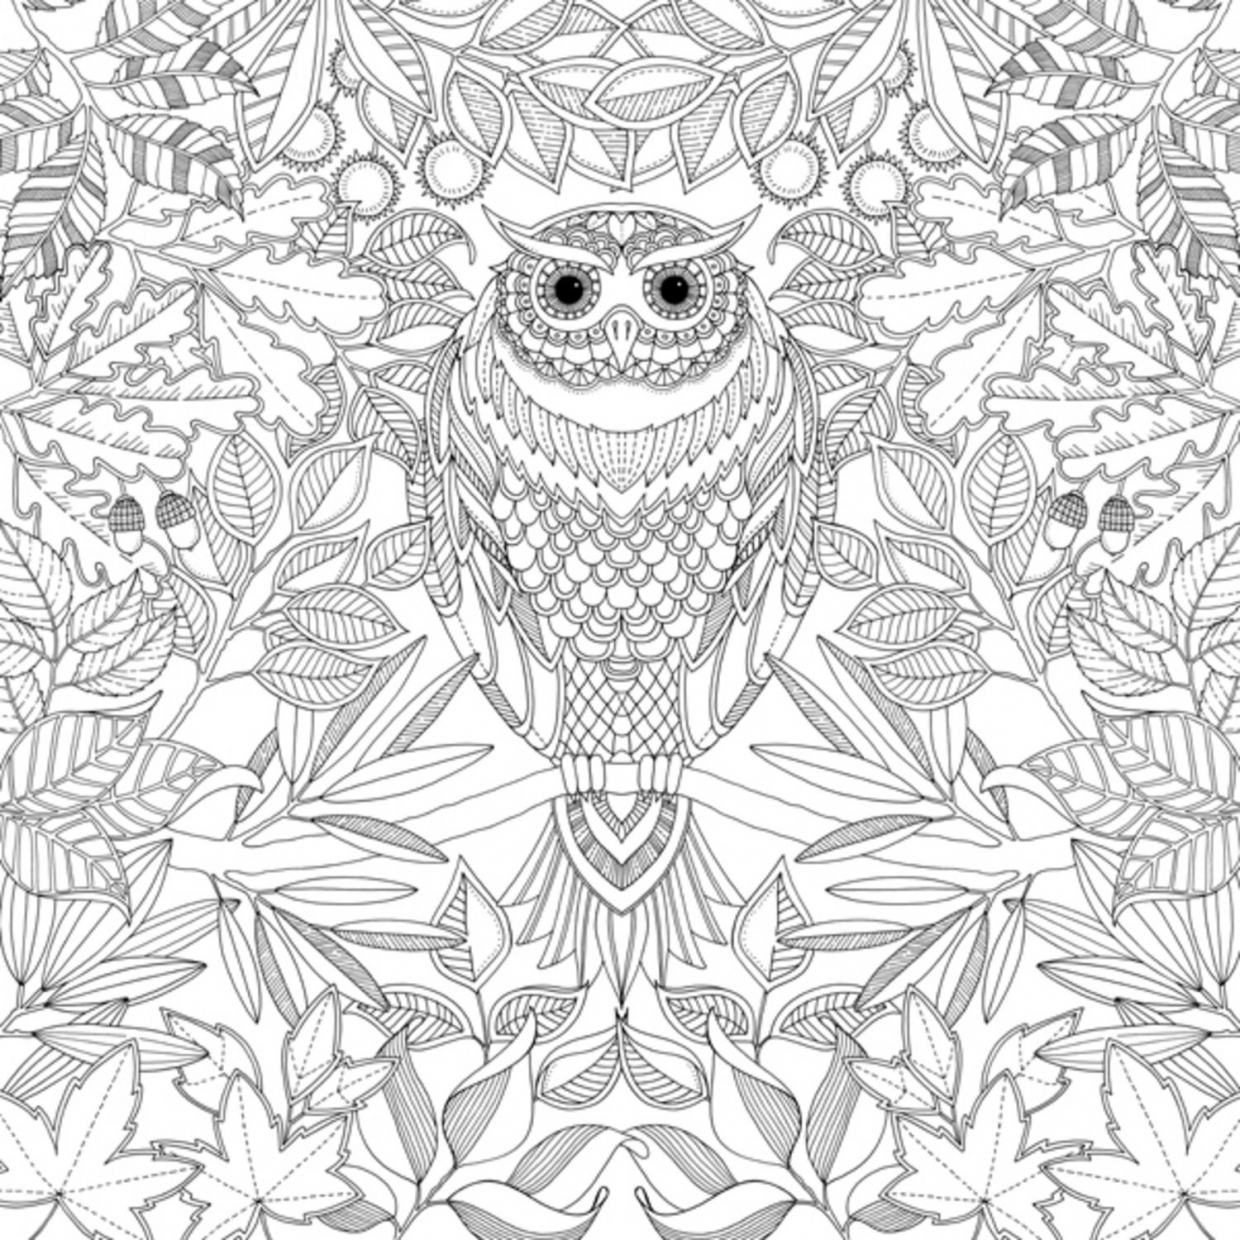 Printable Complex Coloring Pages Extraordinary Get This Free Complex Coloring Pages Printable Abxu2 Inspiration Design